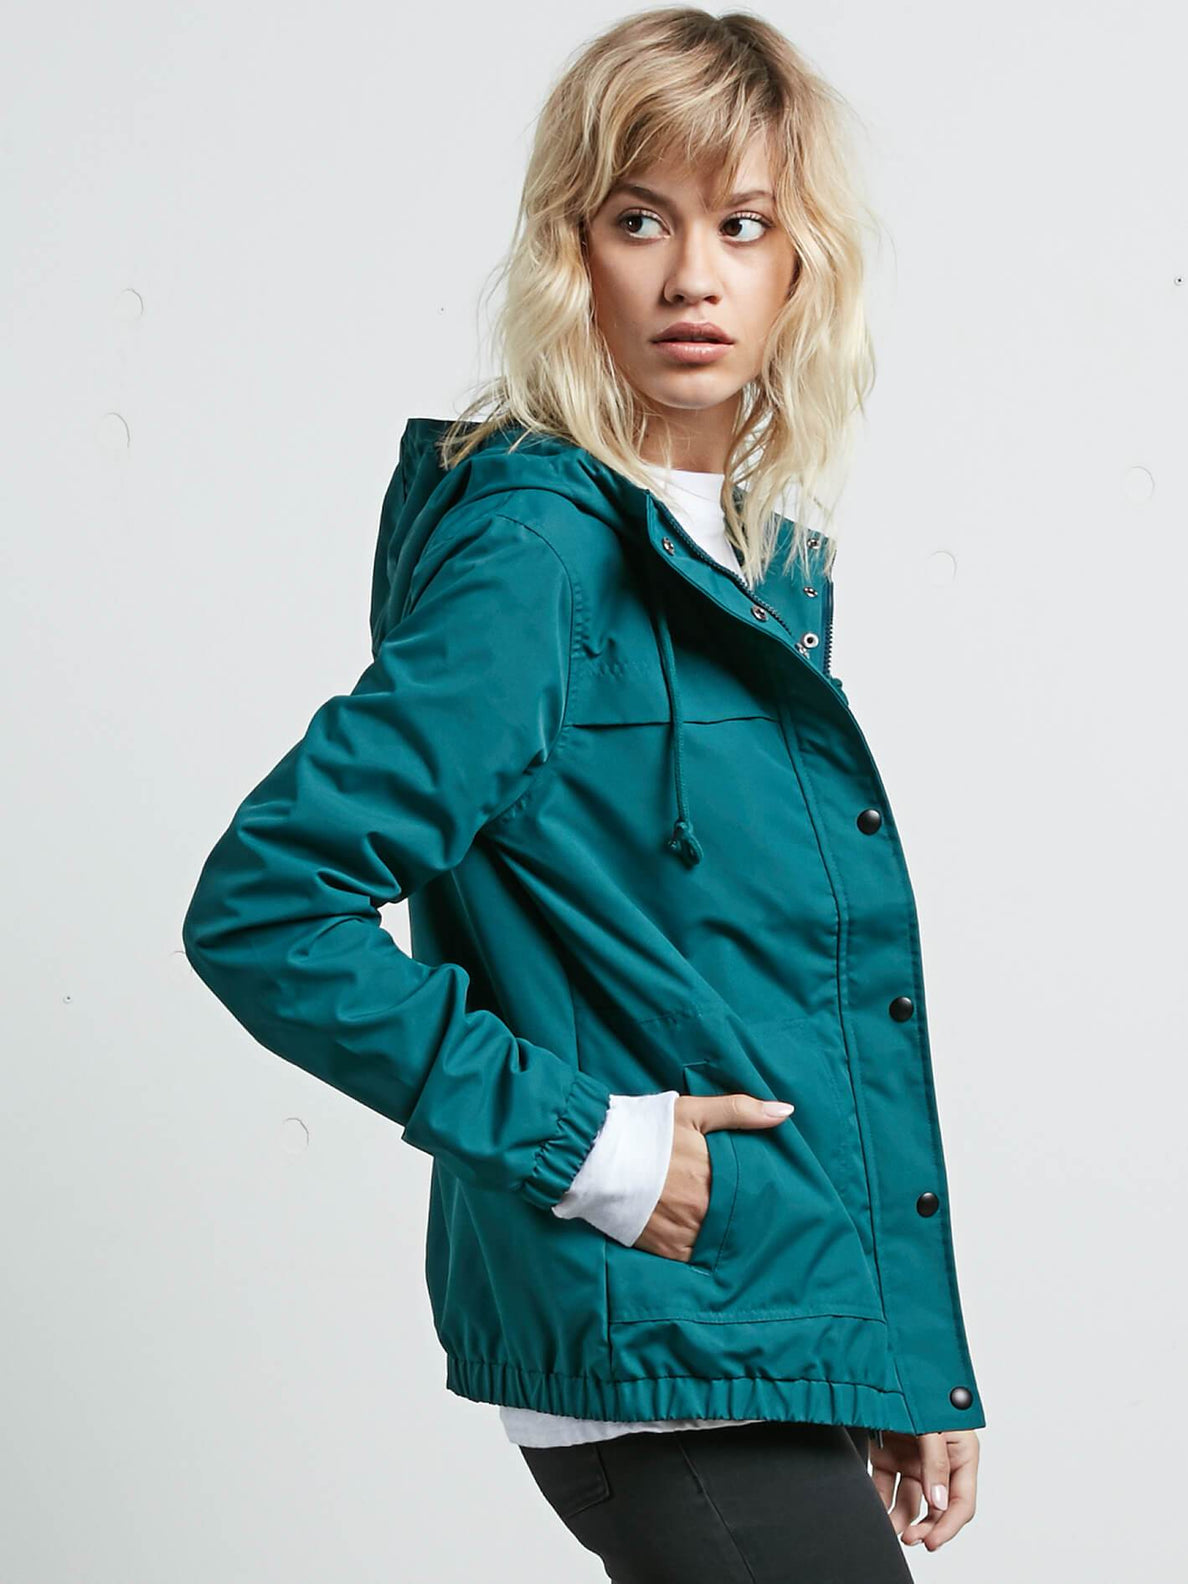 Enemy Stone Jacket In Midnight Green, Alternate View